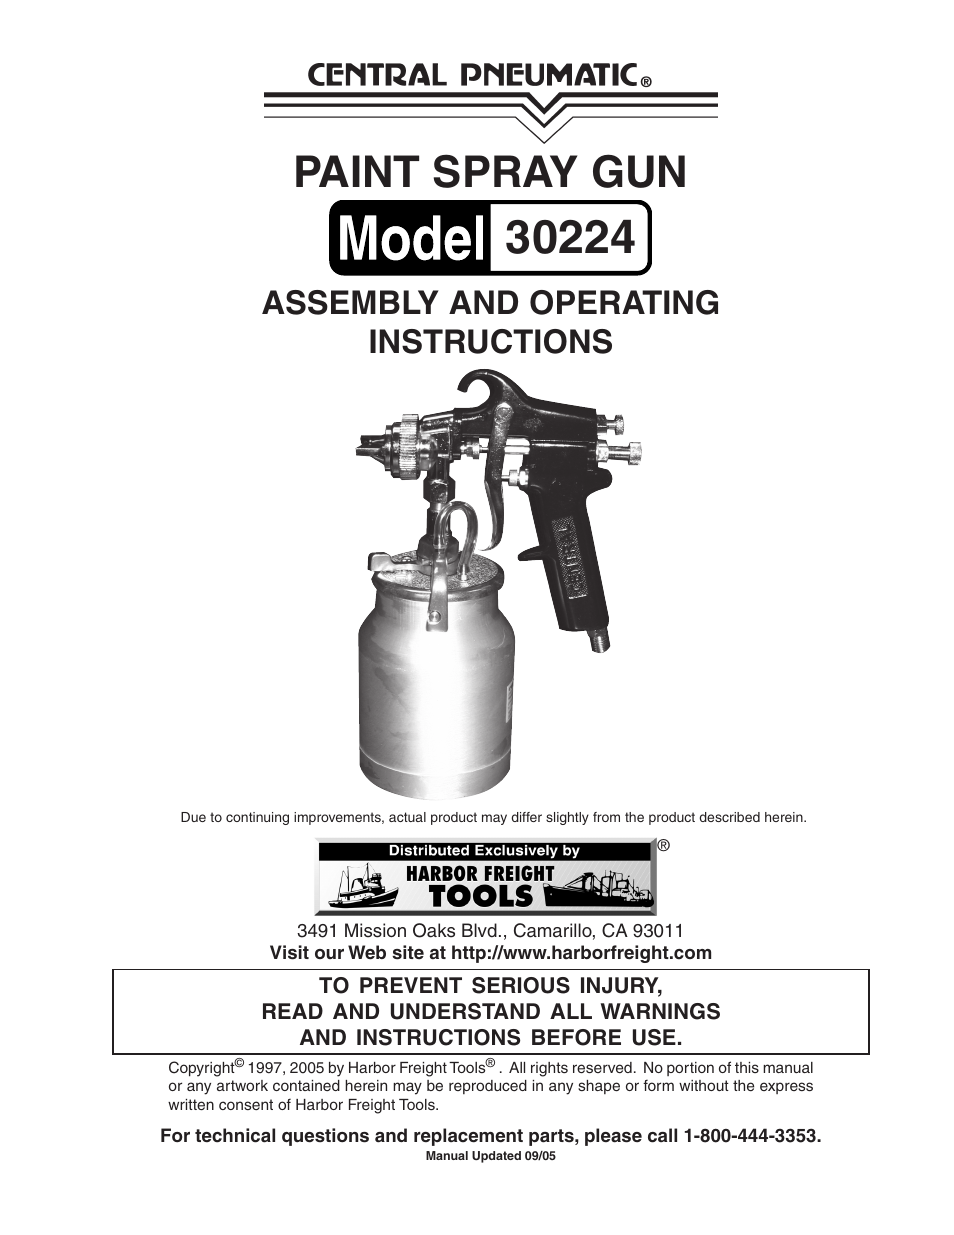 How To Use Harbor Freight Paint Sprayer